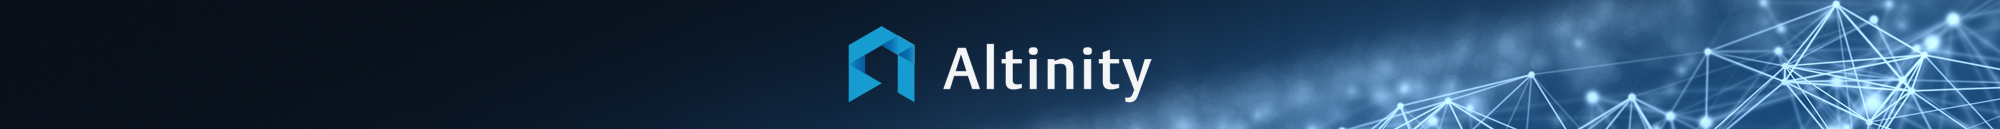 Altinity - Leading Software and Service provider for ClickHouse DBMS